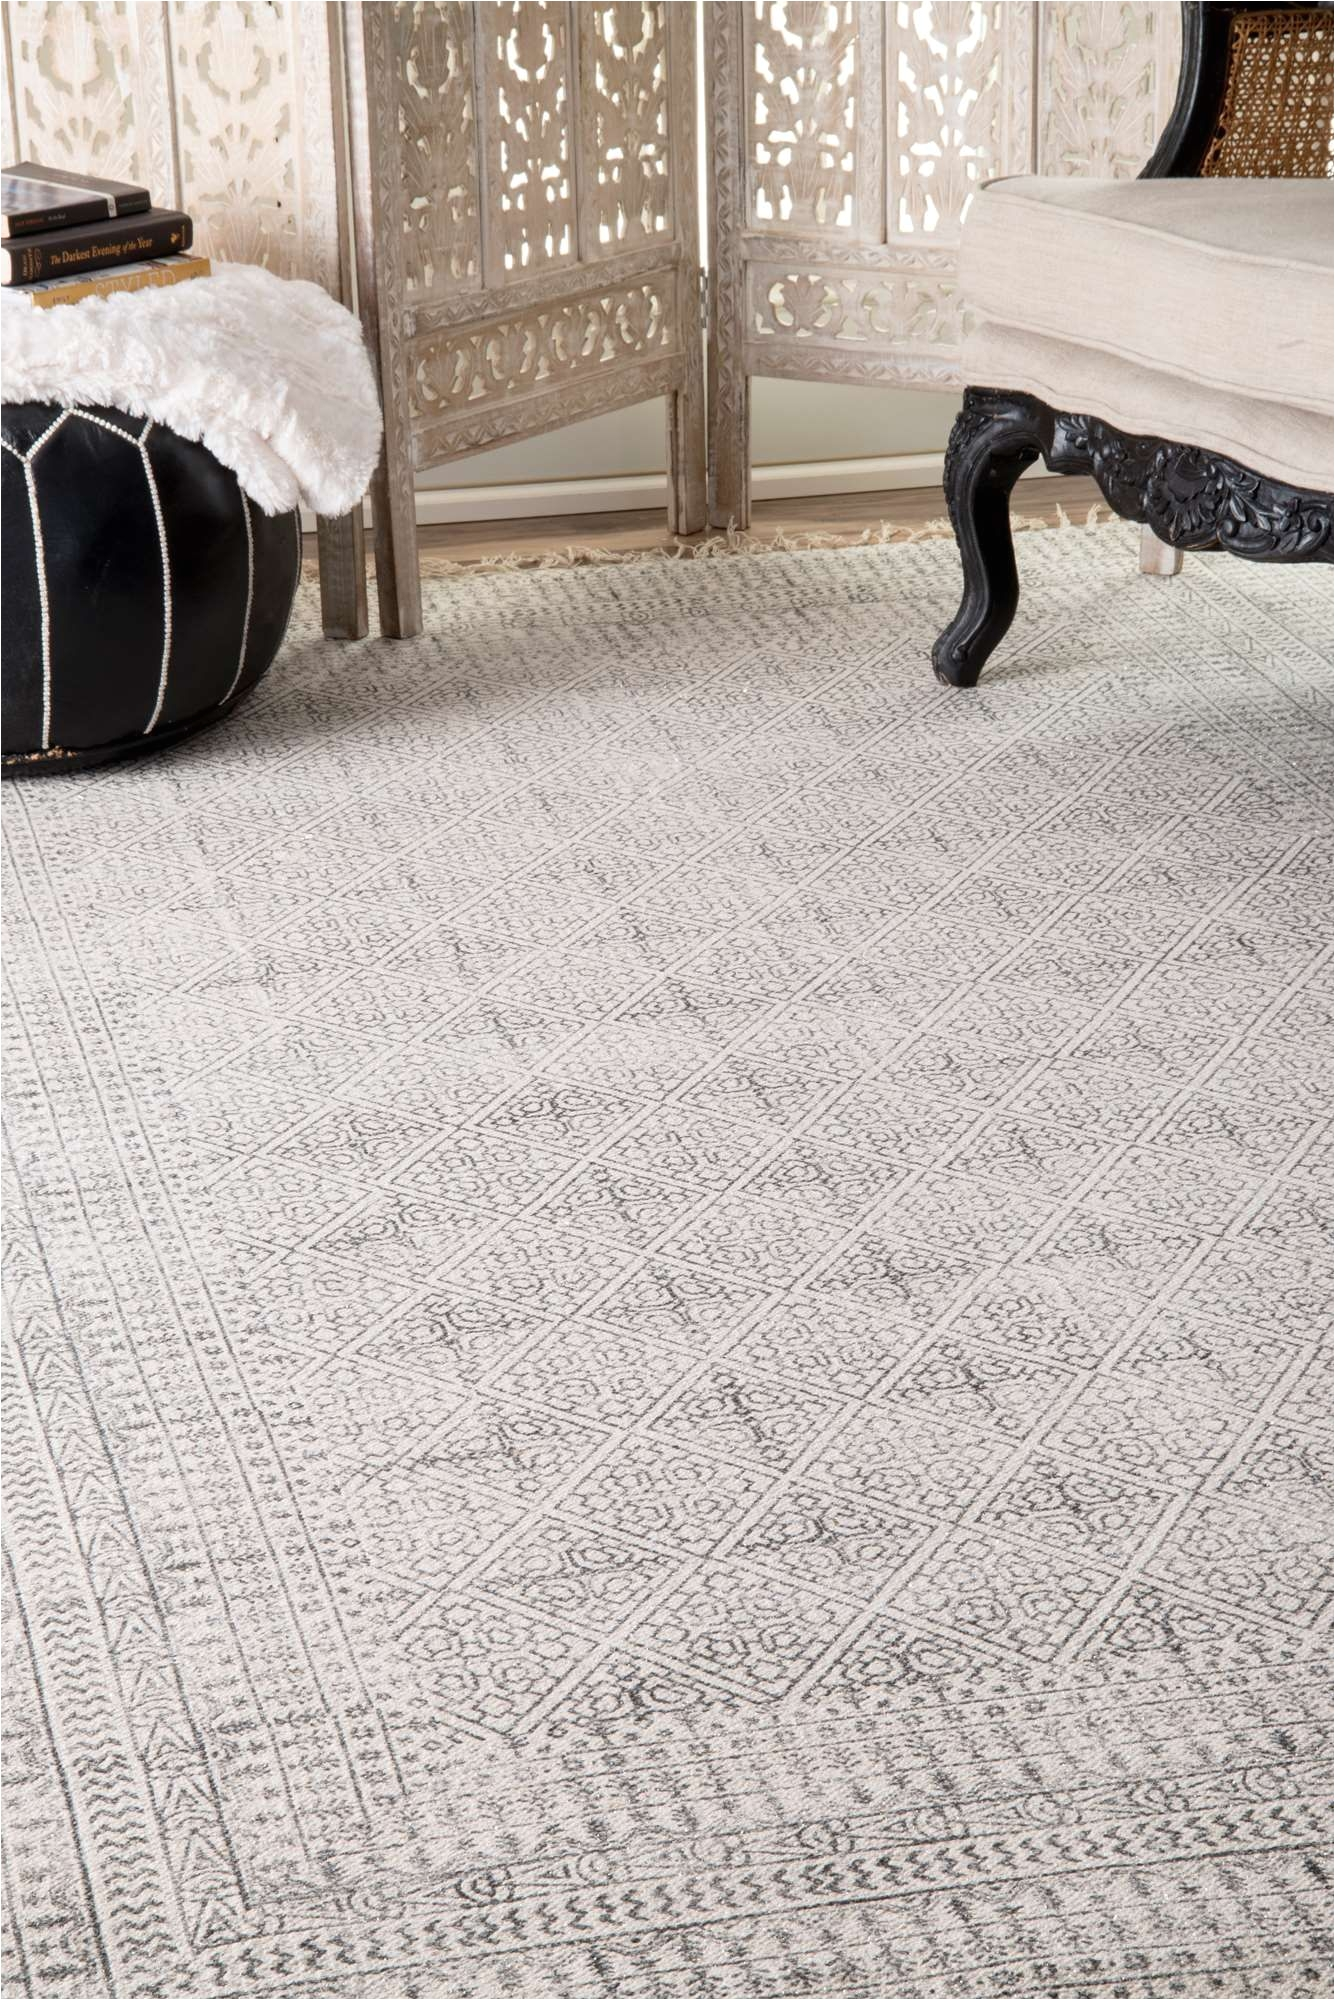 Pink and Grey Aztec Rug Rugs Usa area Rugs In Many Styles Including Contemporary Braided